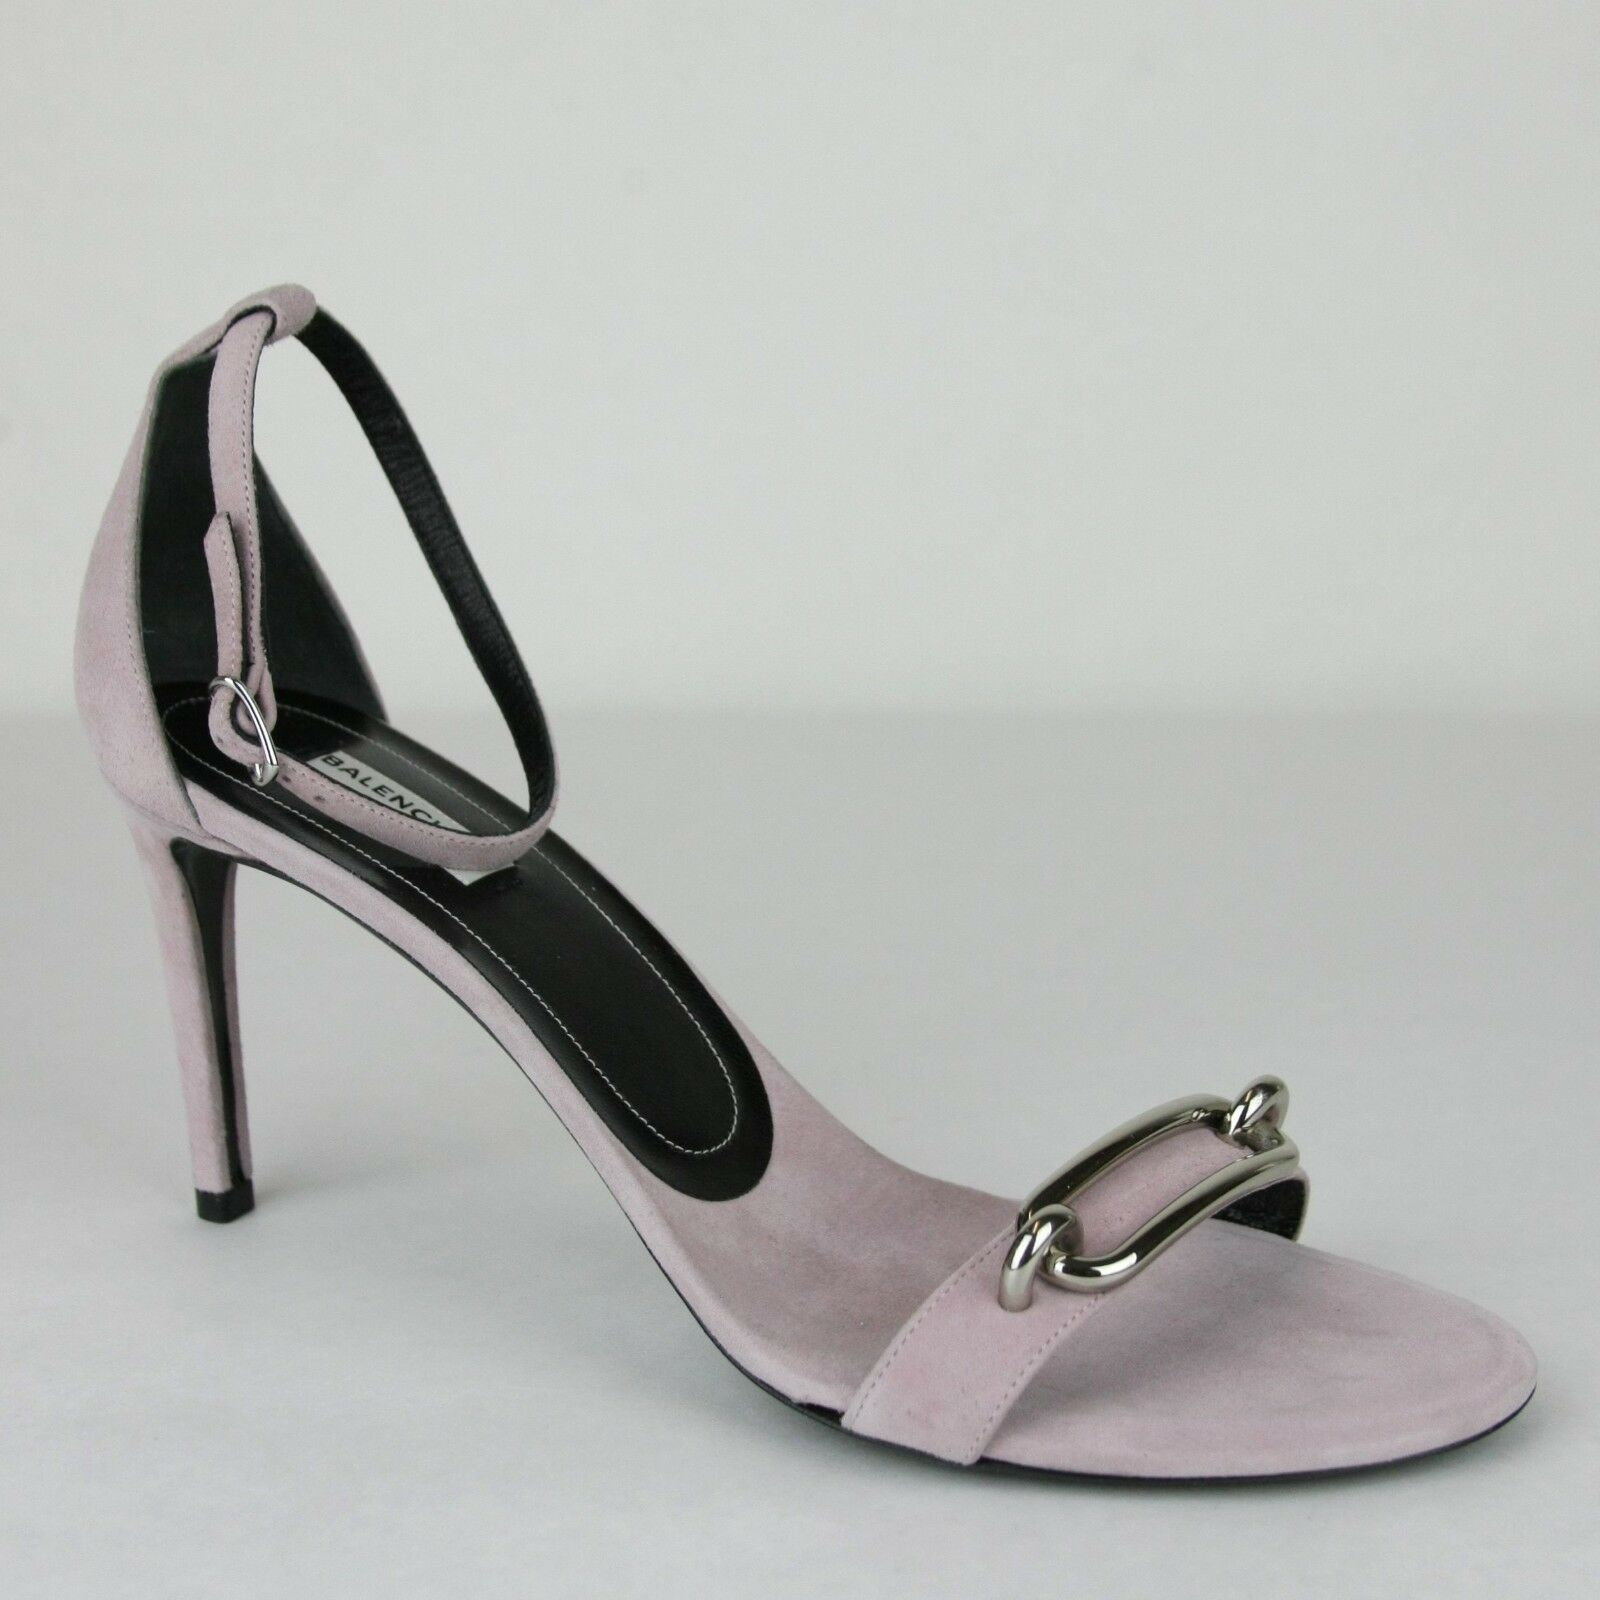 795 Balenciaga Women's purplec Suede Heel with Silver Bar 41 US 11 363500 7606